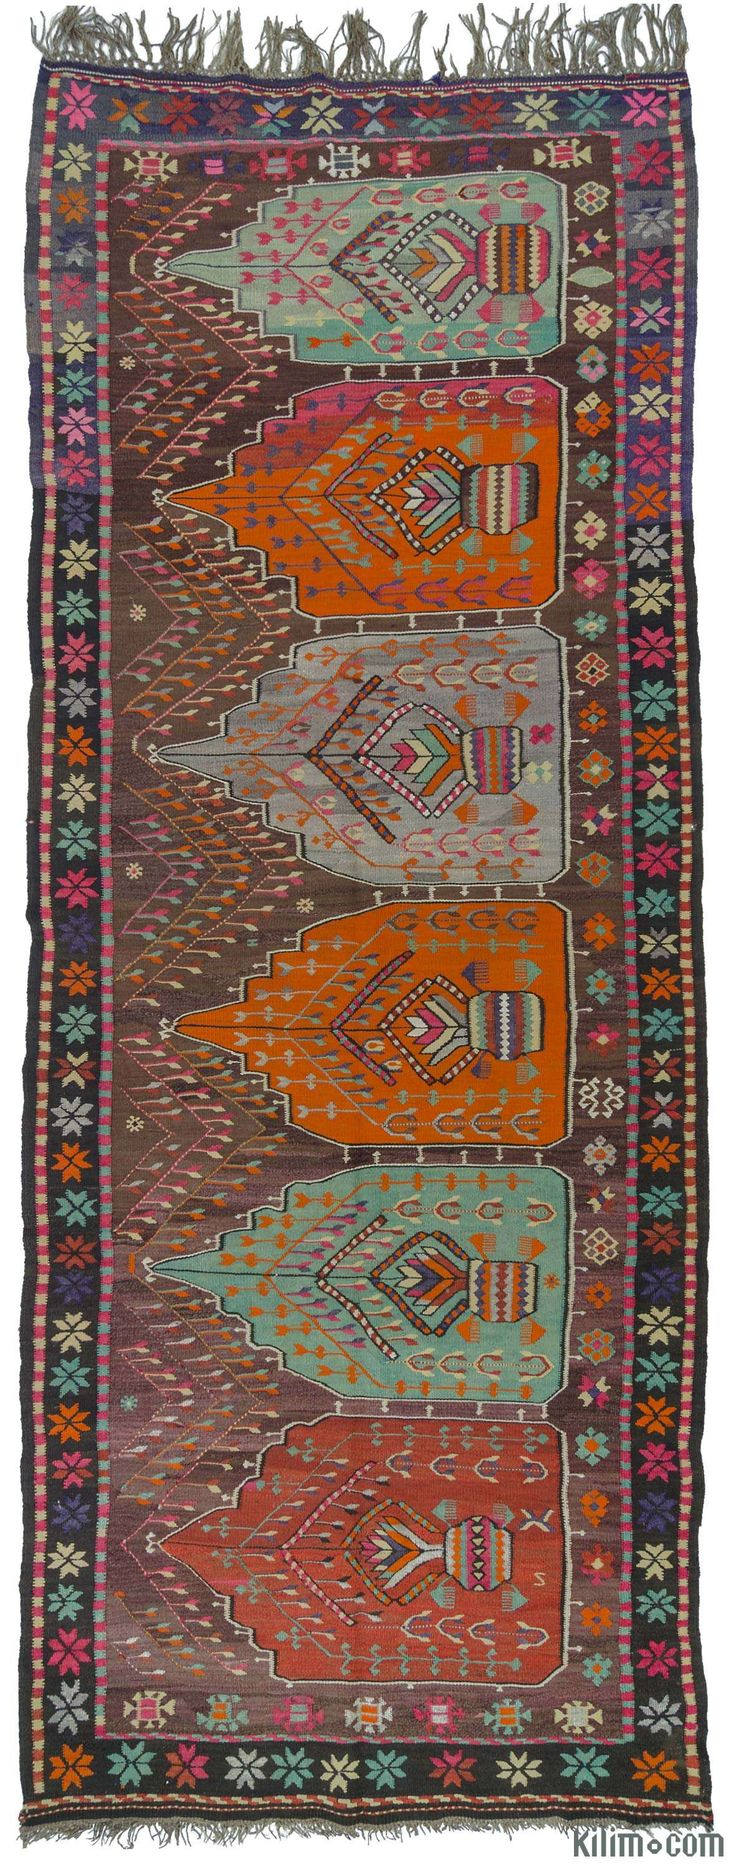 Vintage hand-woven Artvin kilim rug with prayer arch motifs. This lovely kilim is around 50 years old and in very good condition. Artvin is located in the northeastern Black Sea region of Turkey.